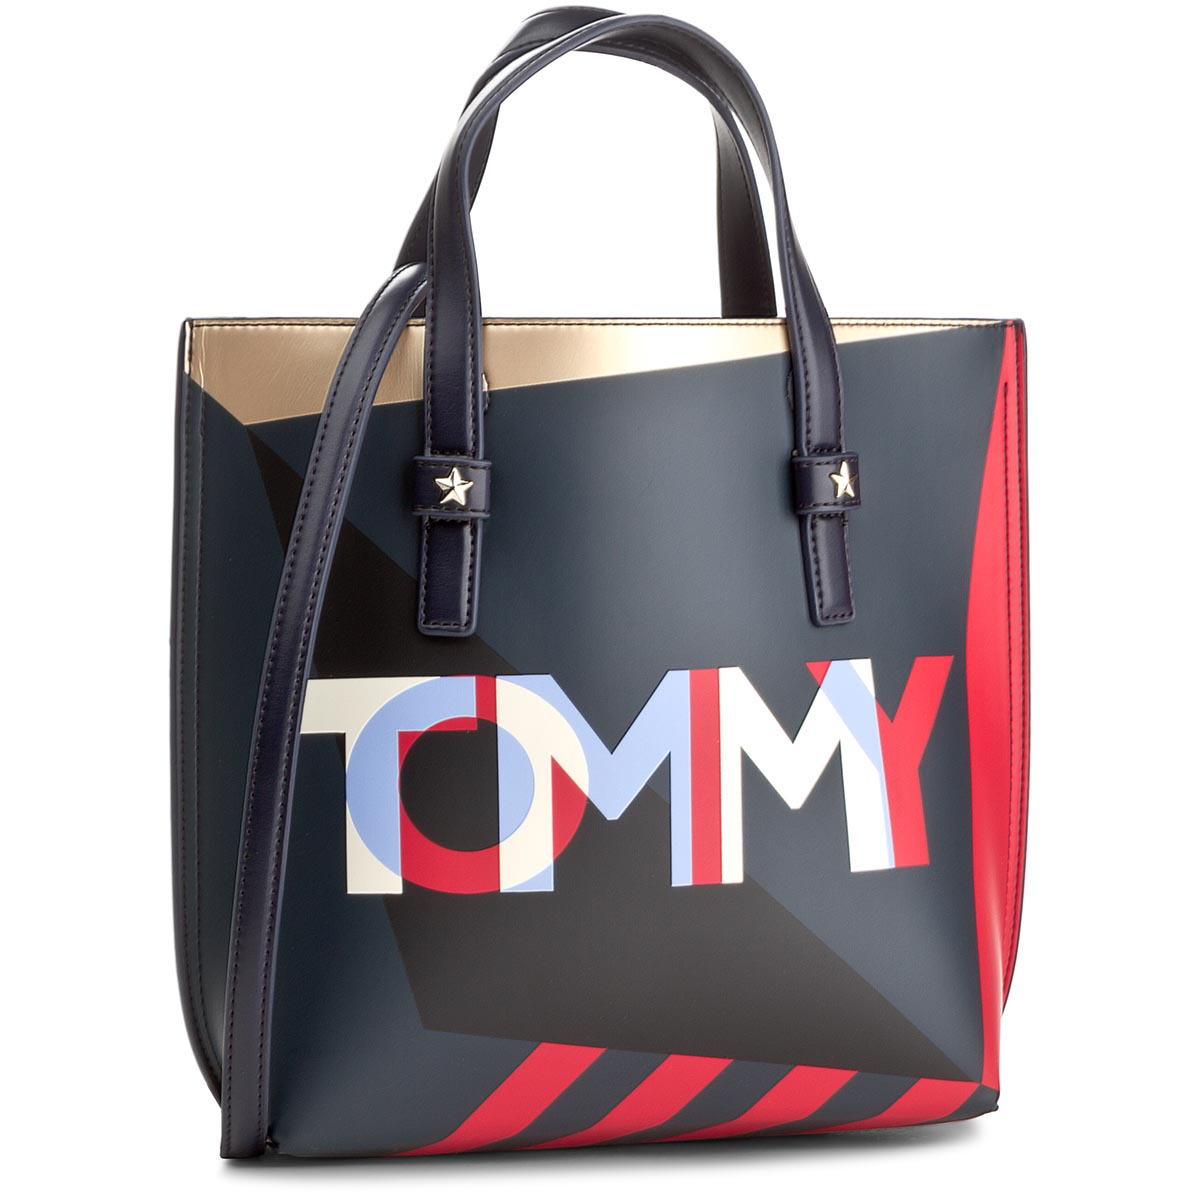 f3f3058c9d4c7 Torebka TOMMY HILFIGER - Th Effortless Tote Small Geo Cb AW0AW05058 905